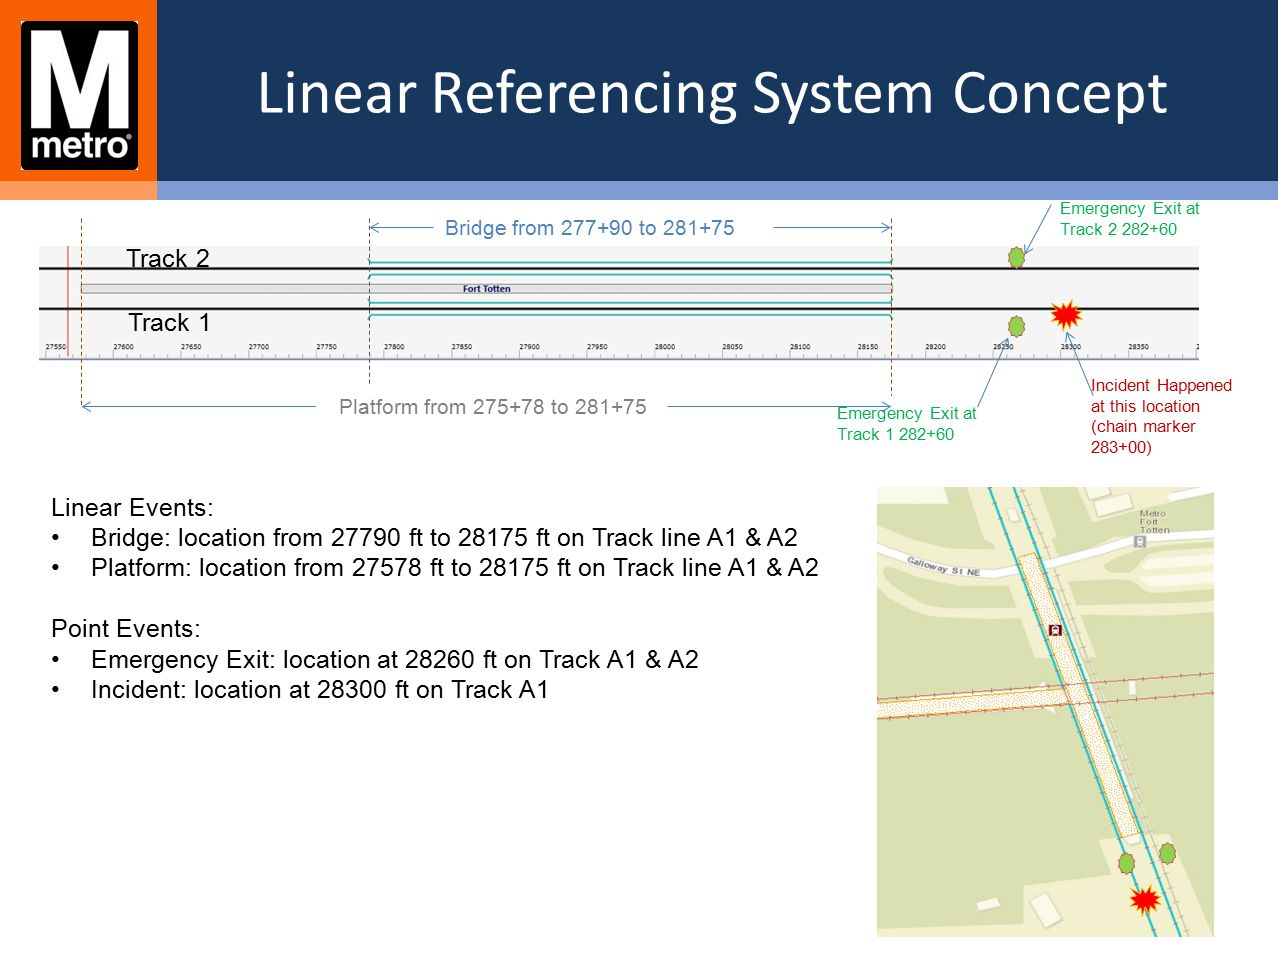 Linear Referencing System Concept